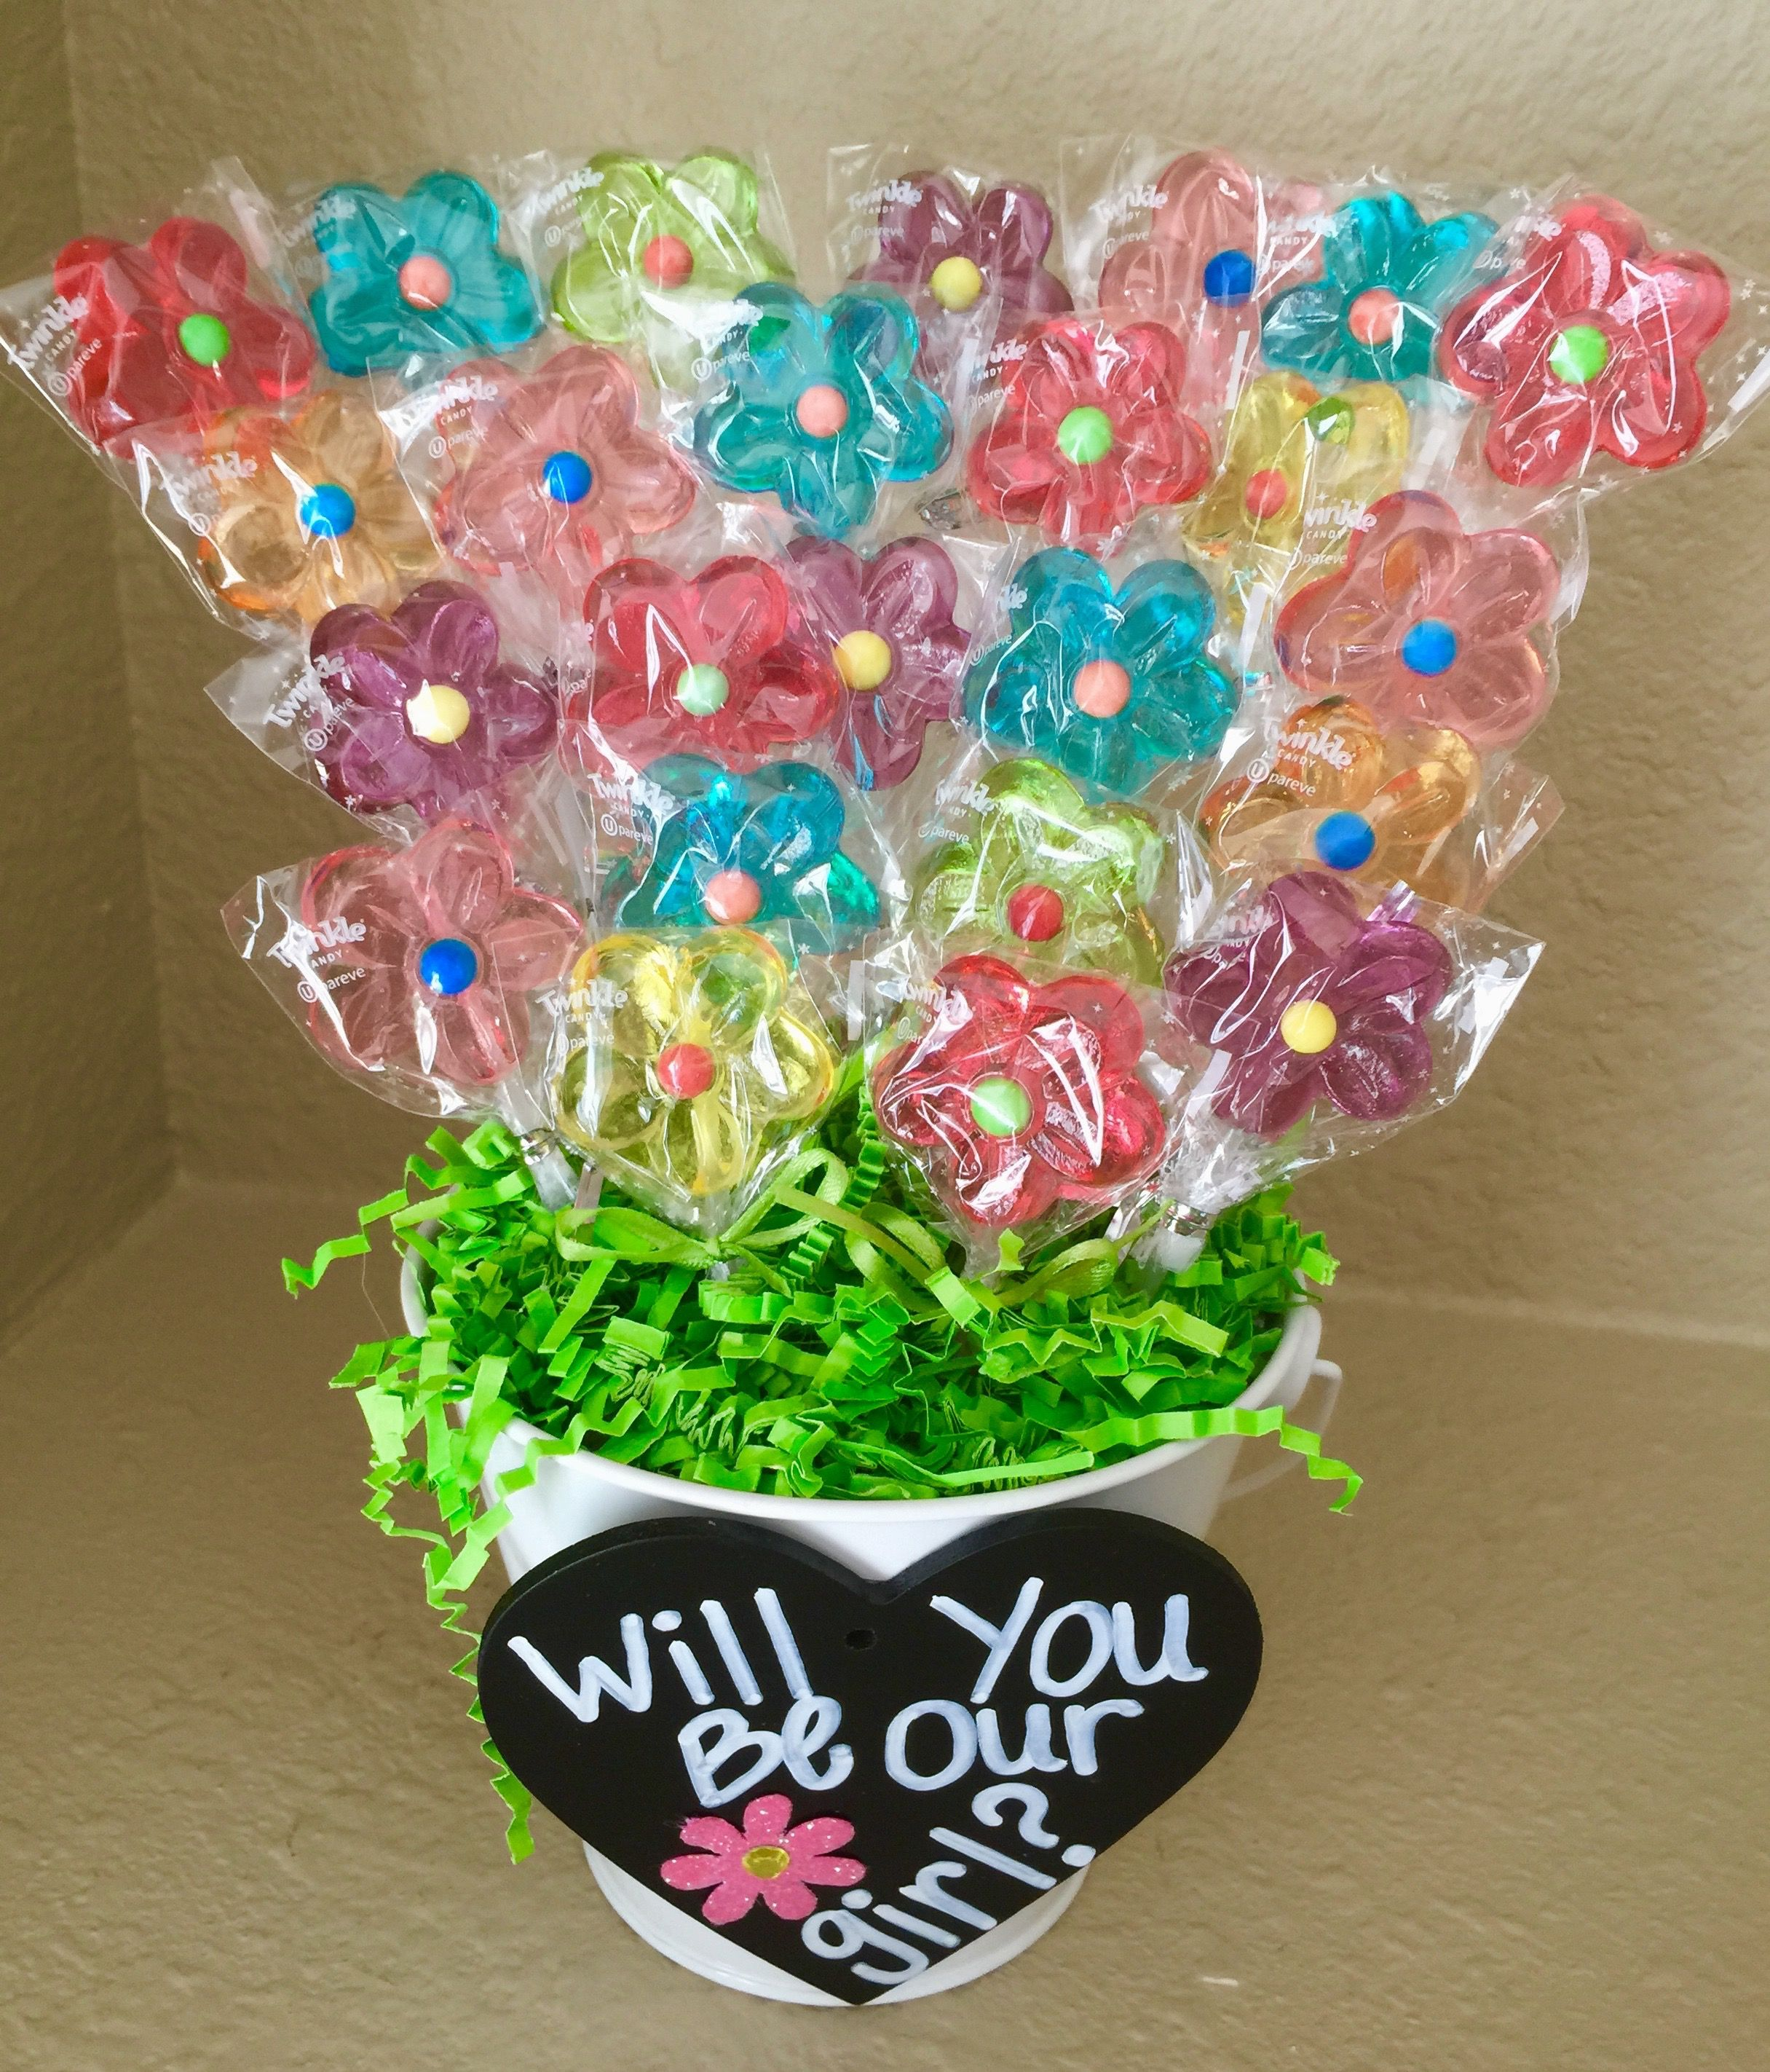 Our flower girl proposal! It was perfect! Gifts for